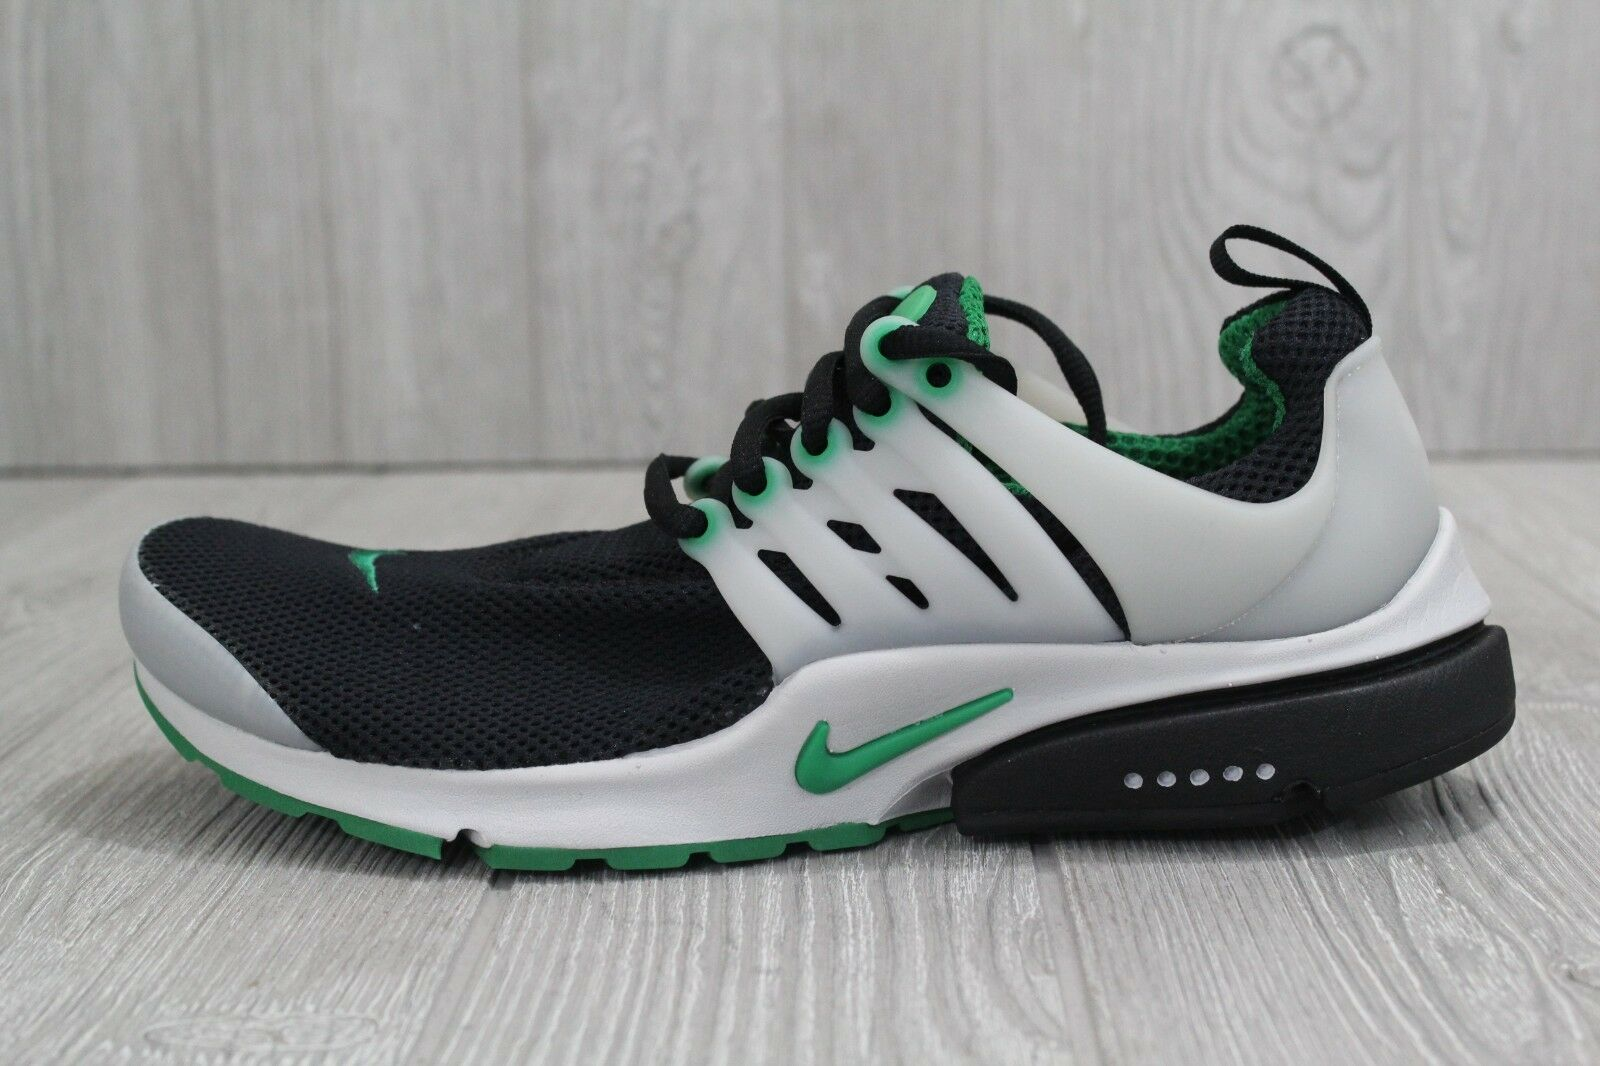 Brand discount 30 New Nike Air Presto Essential Black/Green Running Shoes 848187 003 Men's 8-11